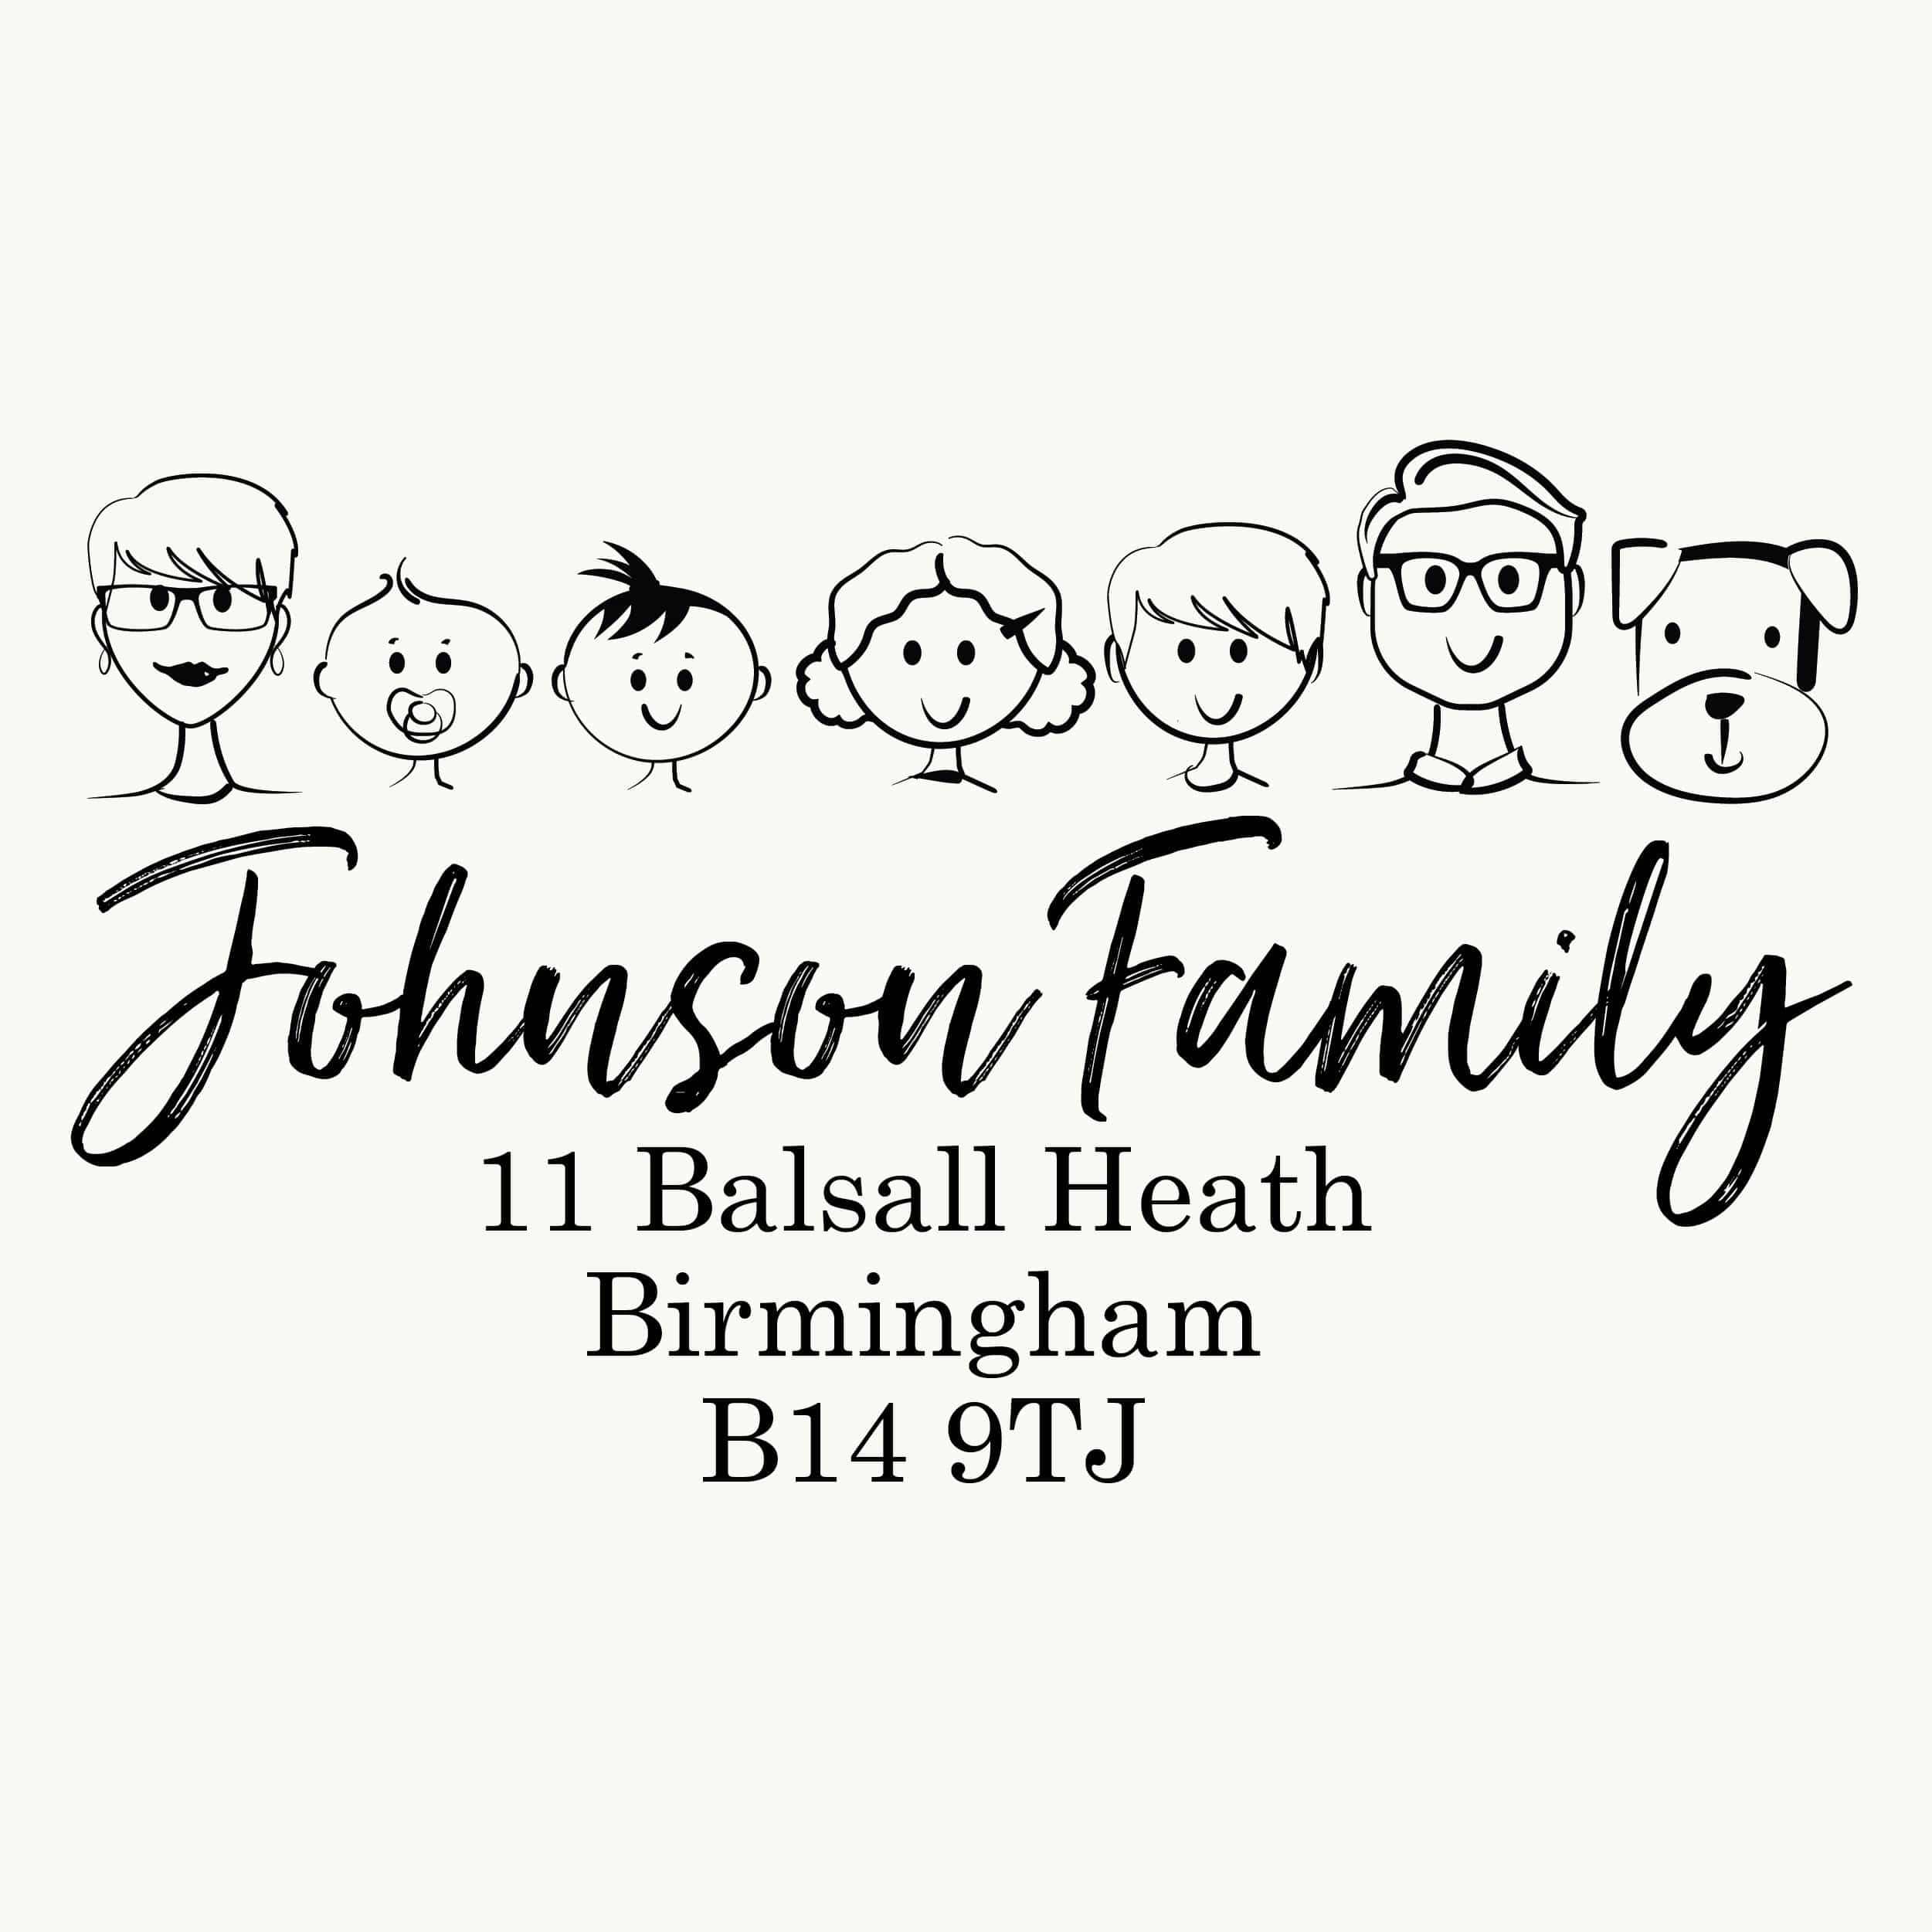 Fun Family Portrait Personalised Stamp - Medium - stamptastic-uk